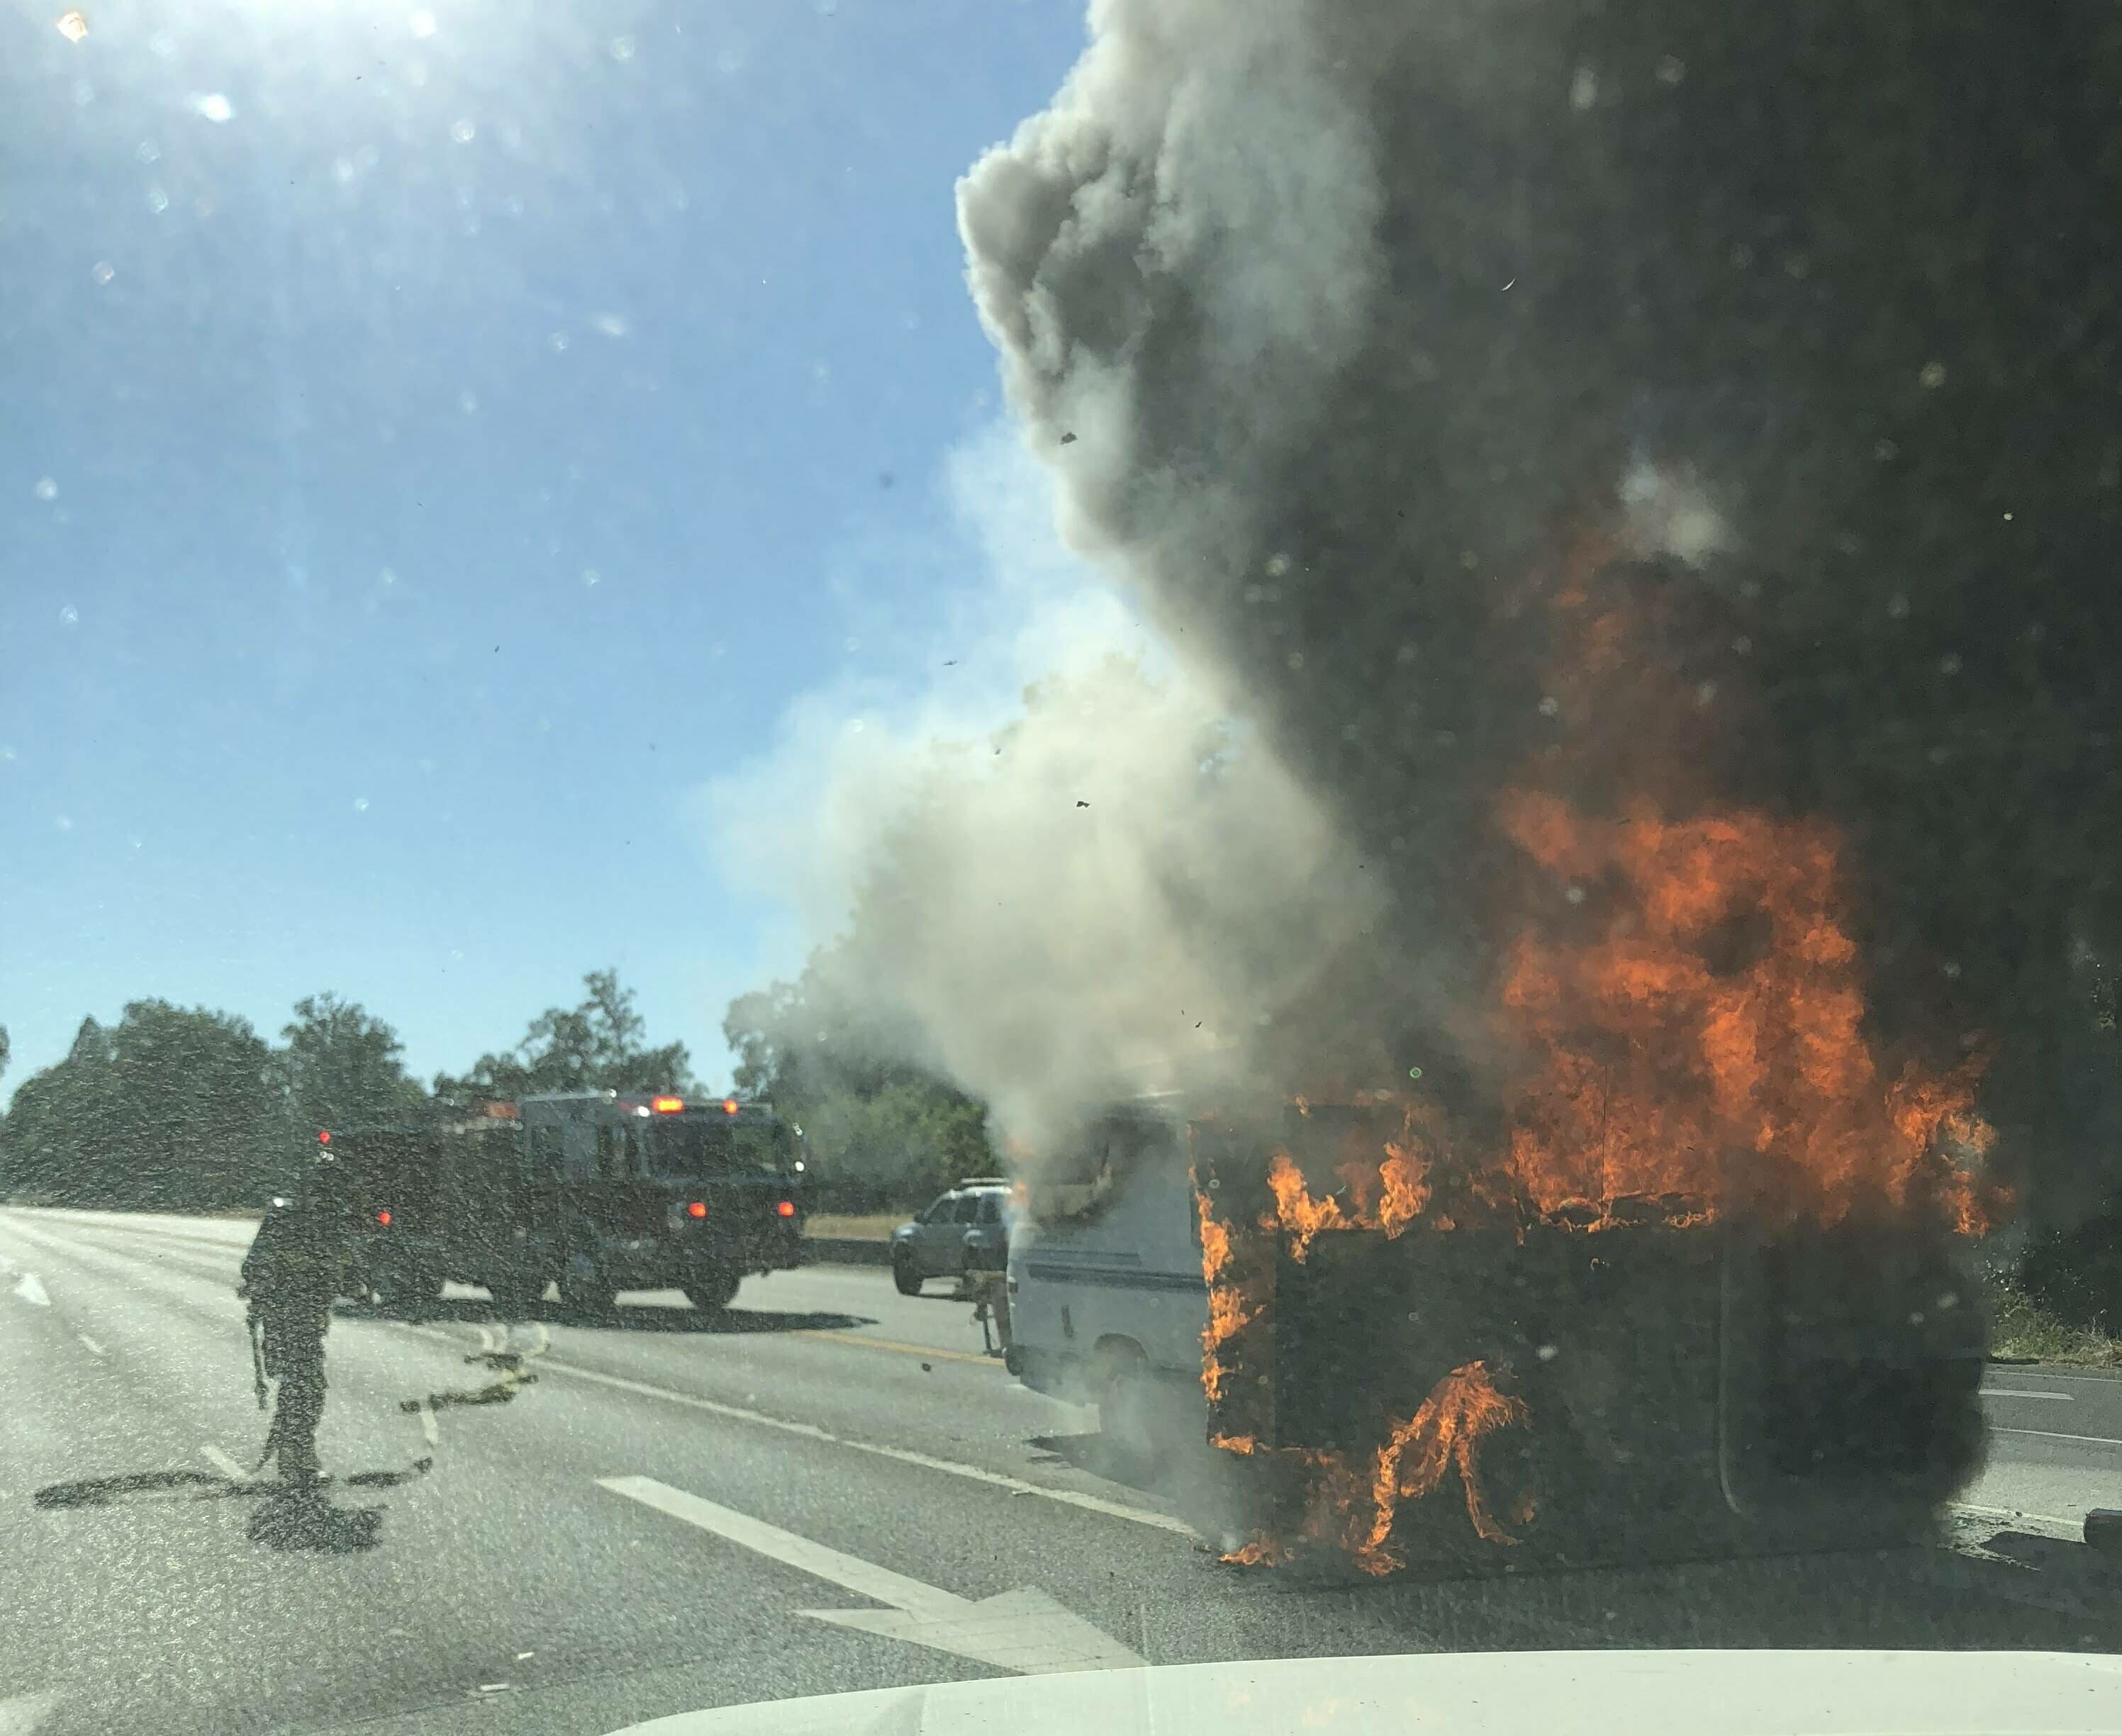 Vehicle fire on Hwy 20 quickly extinguished by firefighters